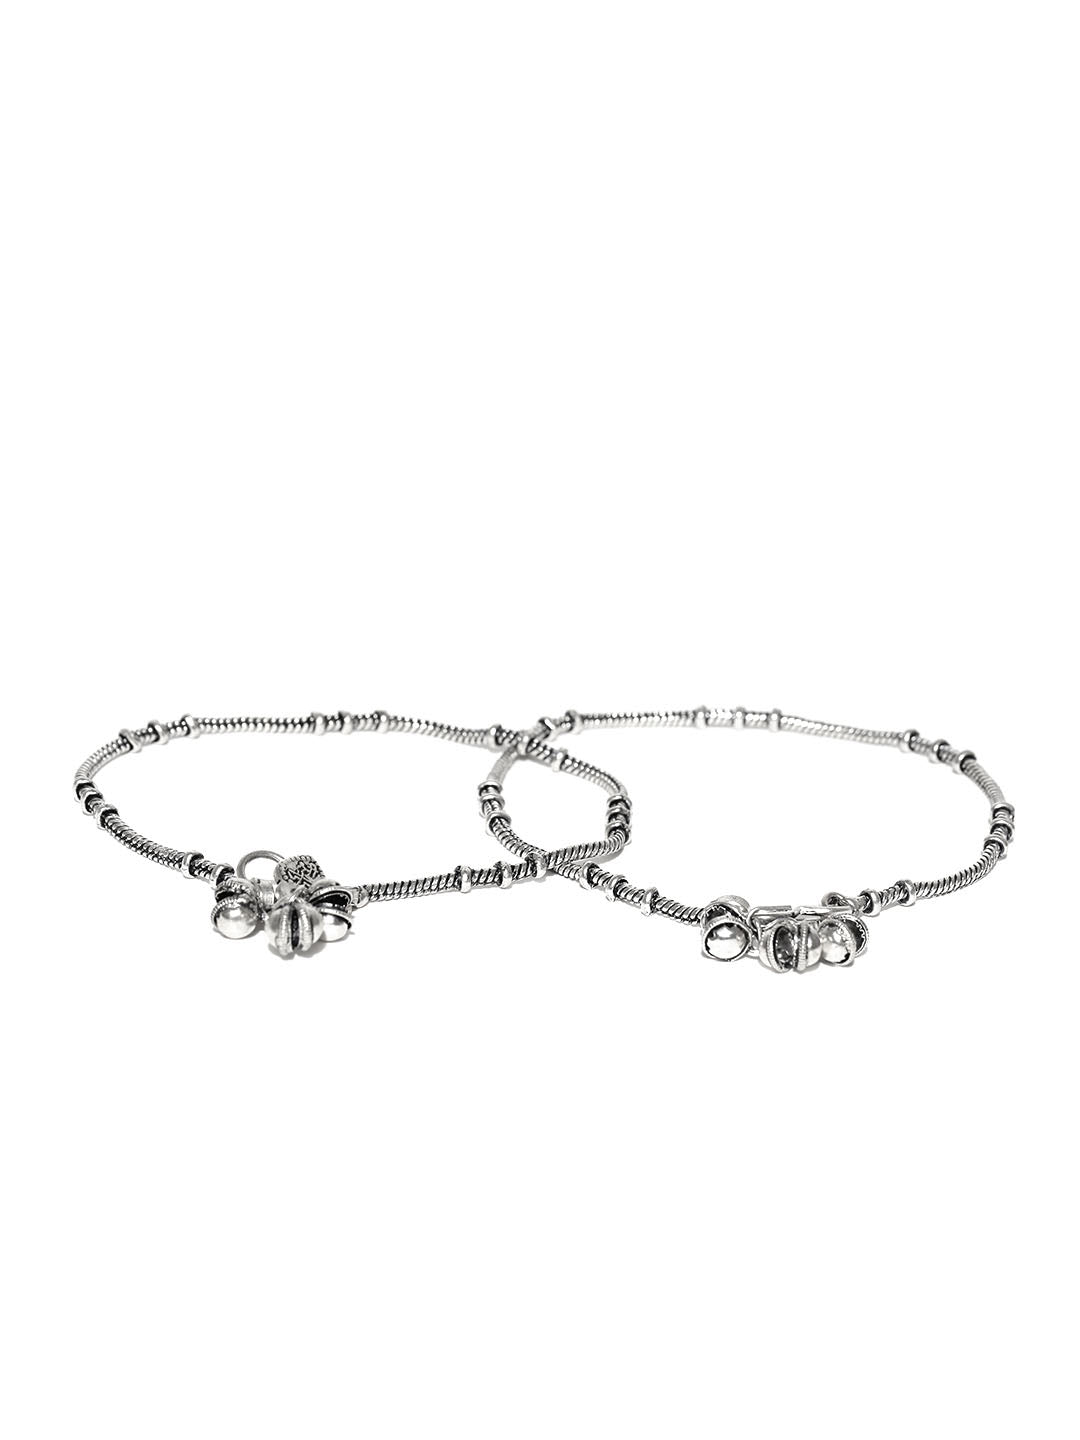 Oxidised Silver-Toned Anklets For Women And Girls